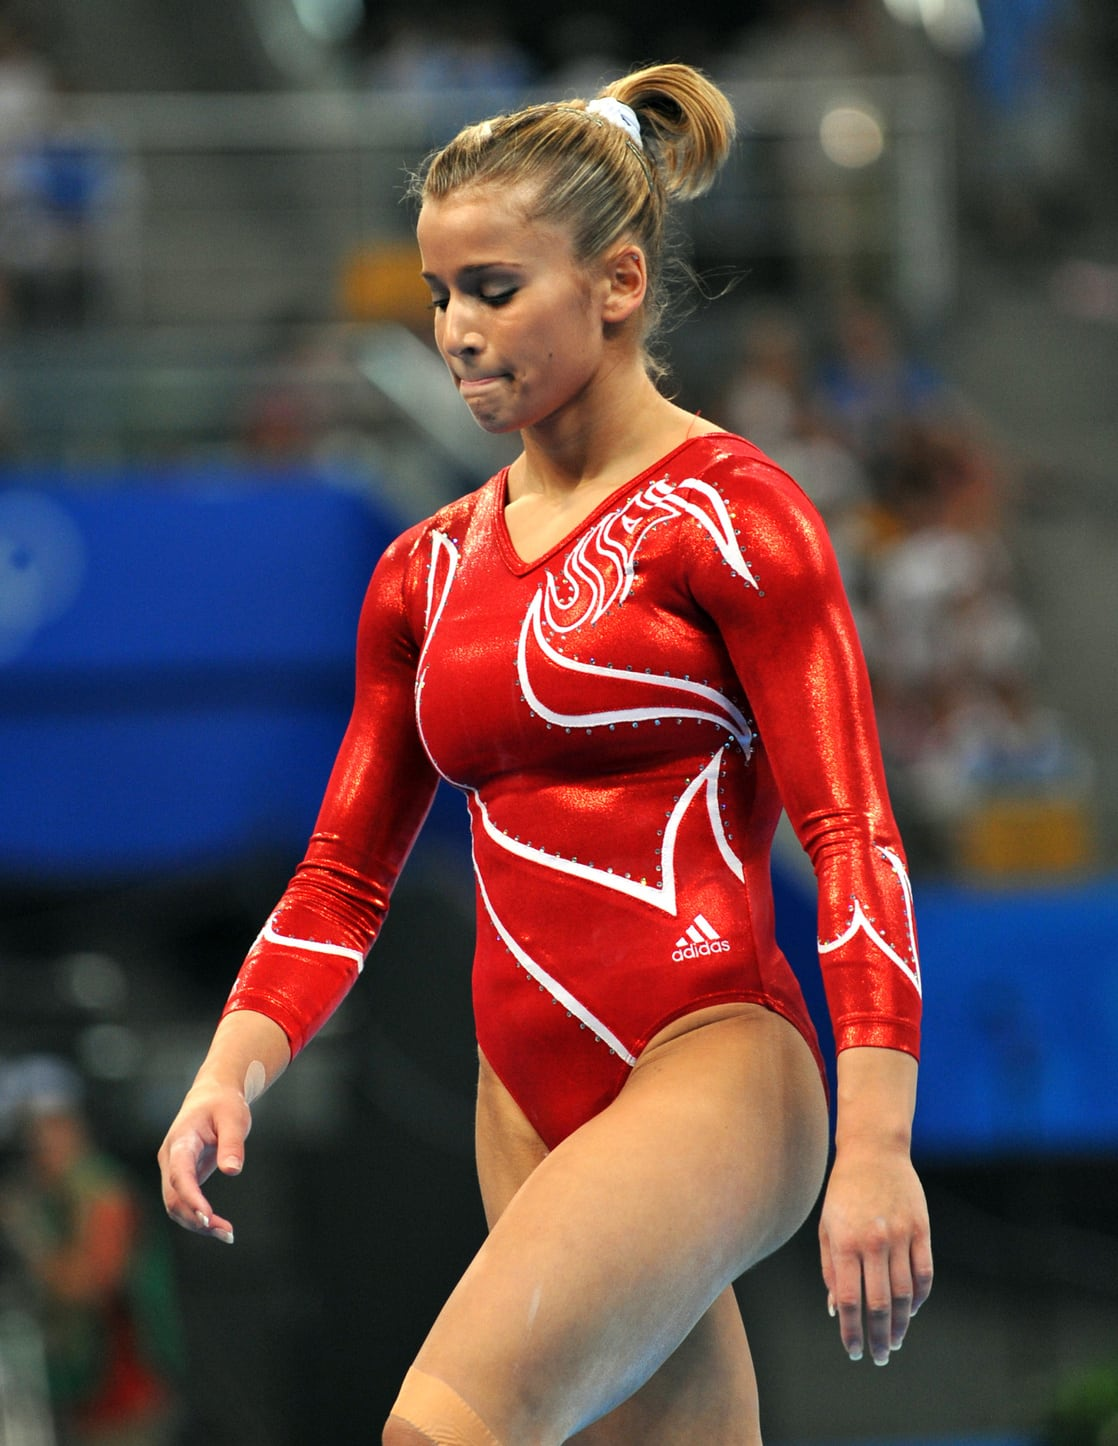 Alicia Sacramone Nude Photos 72